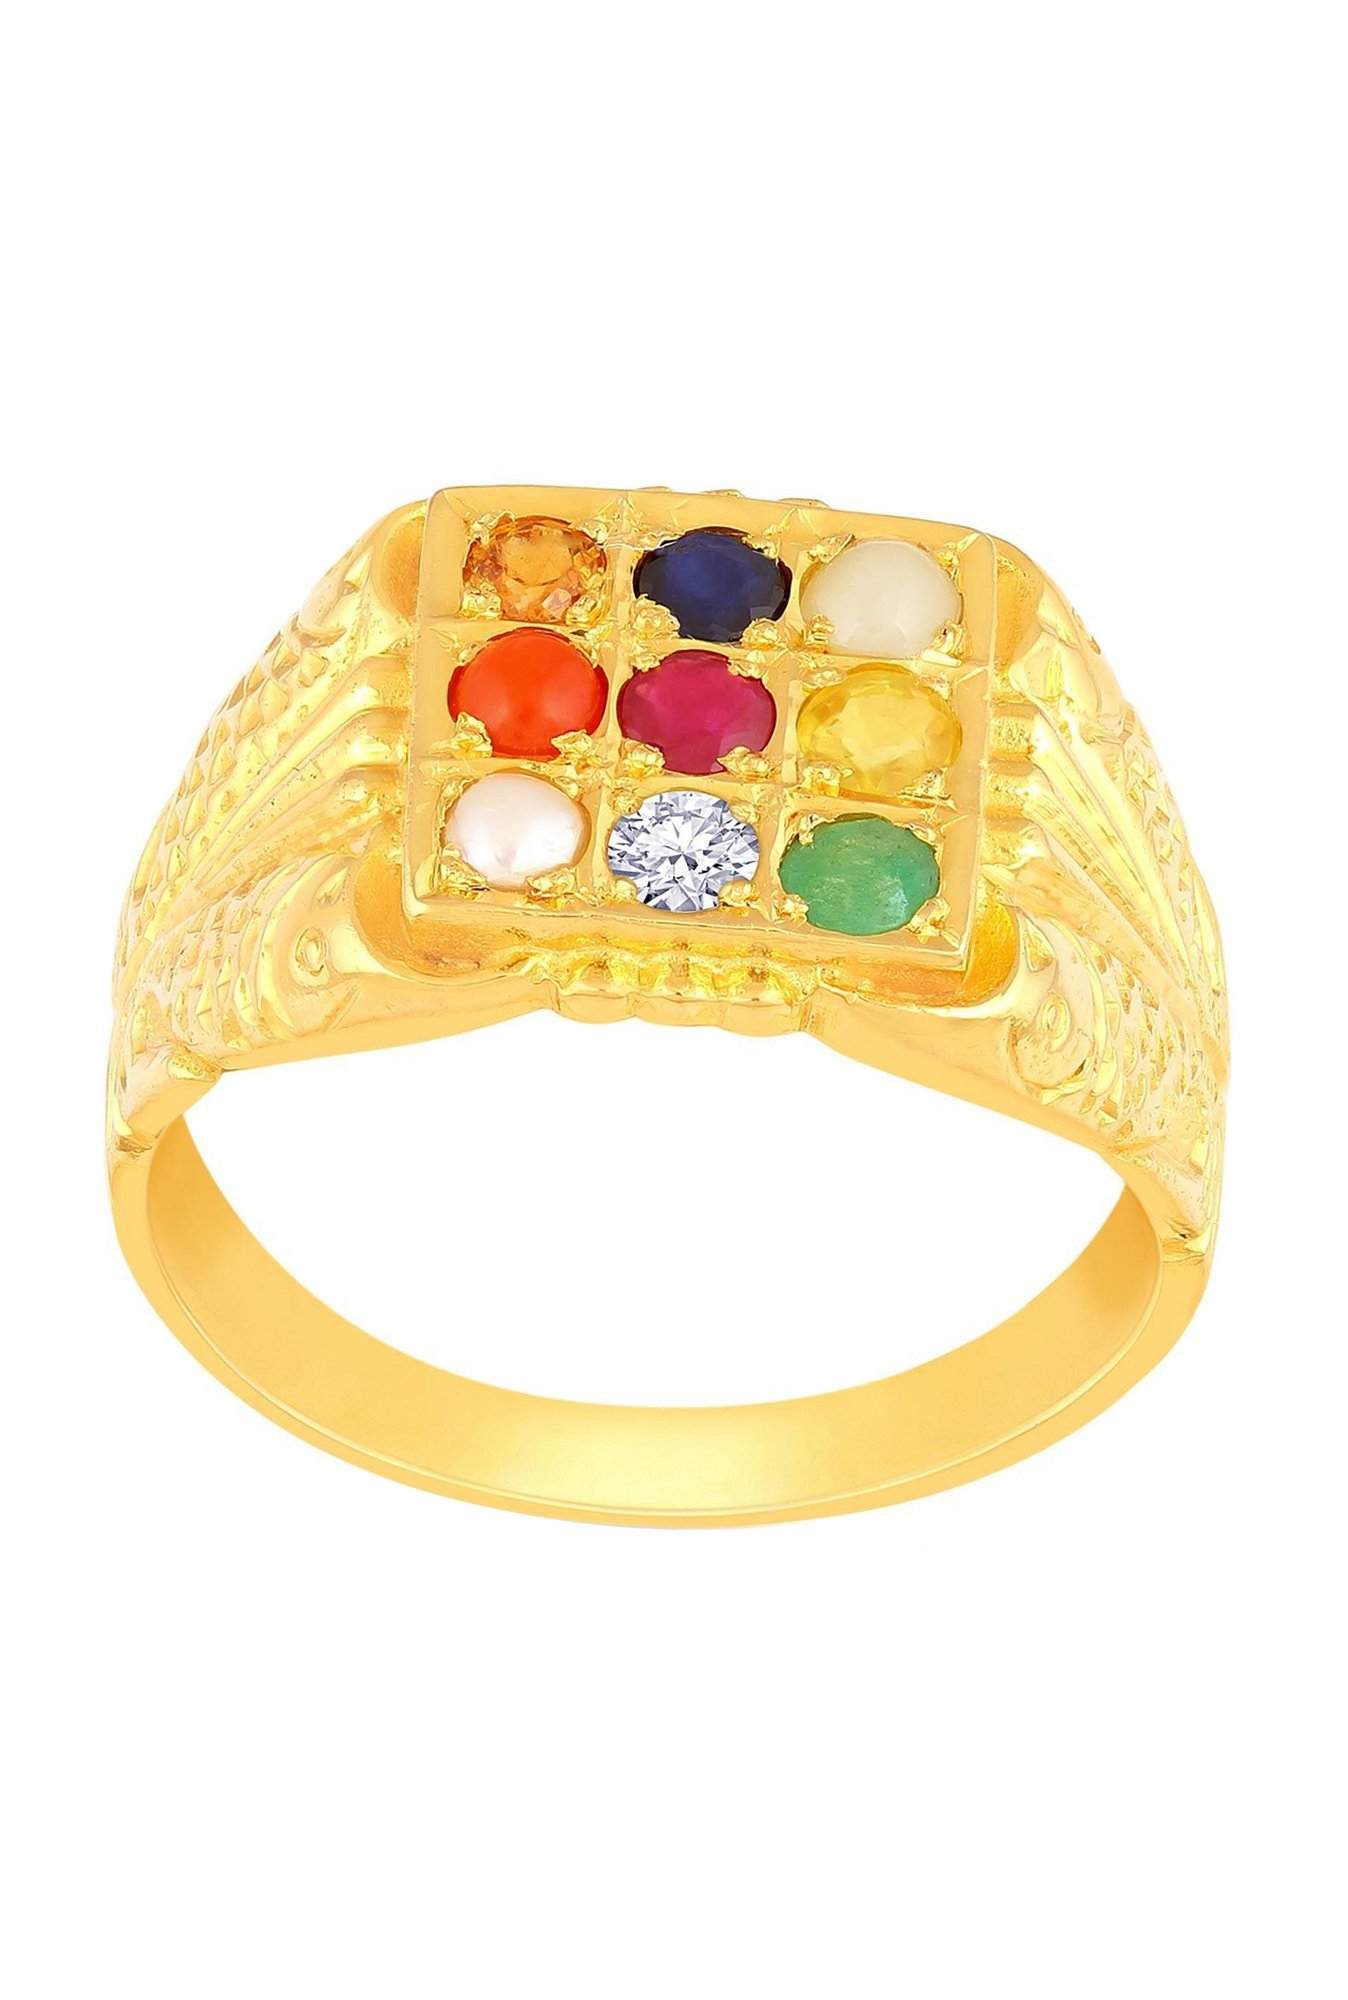 band last same rose img rings with size of a wedding your show gold smaller engagement yellow white or solitaire diamond the is topic pic metal me